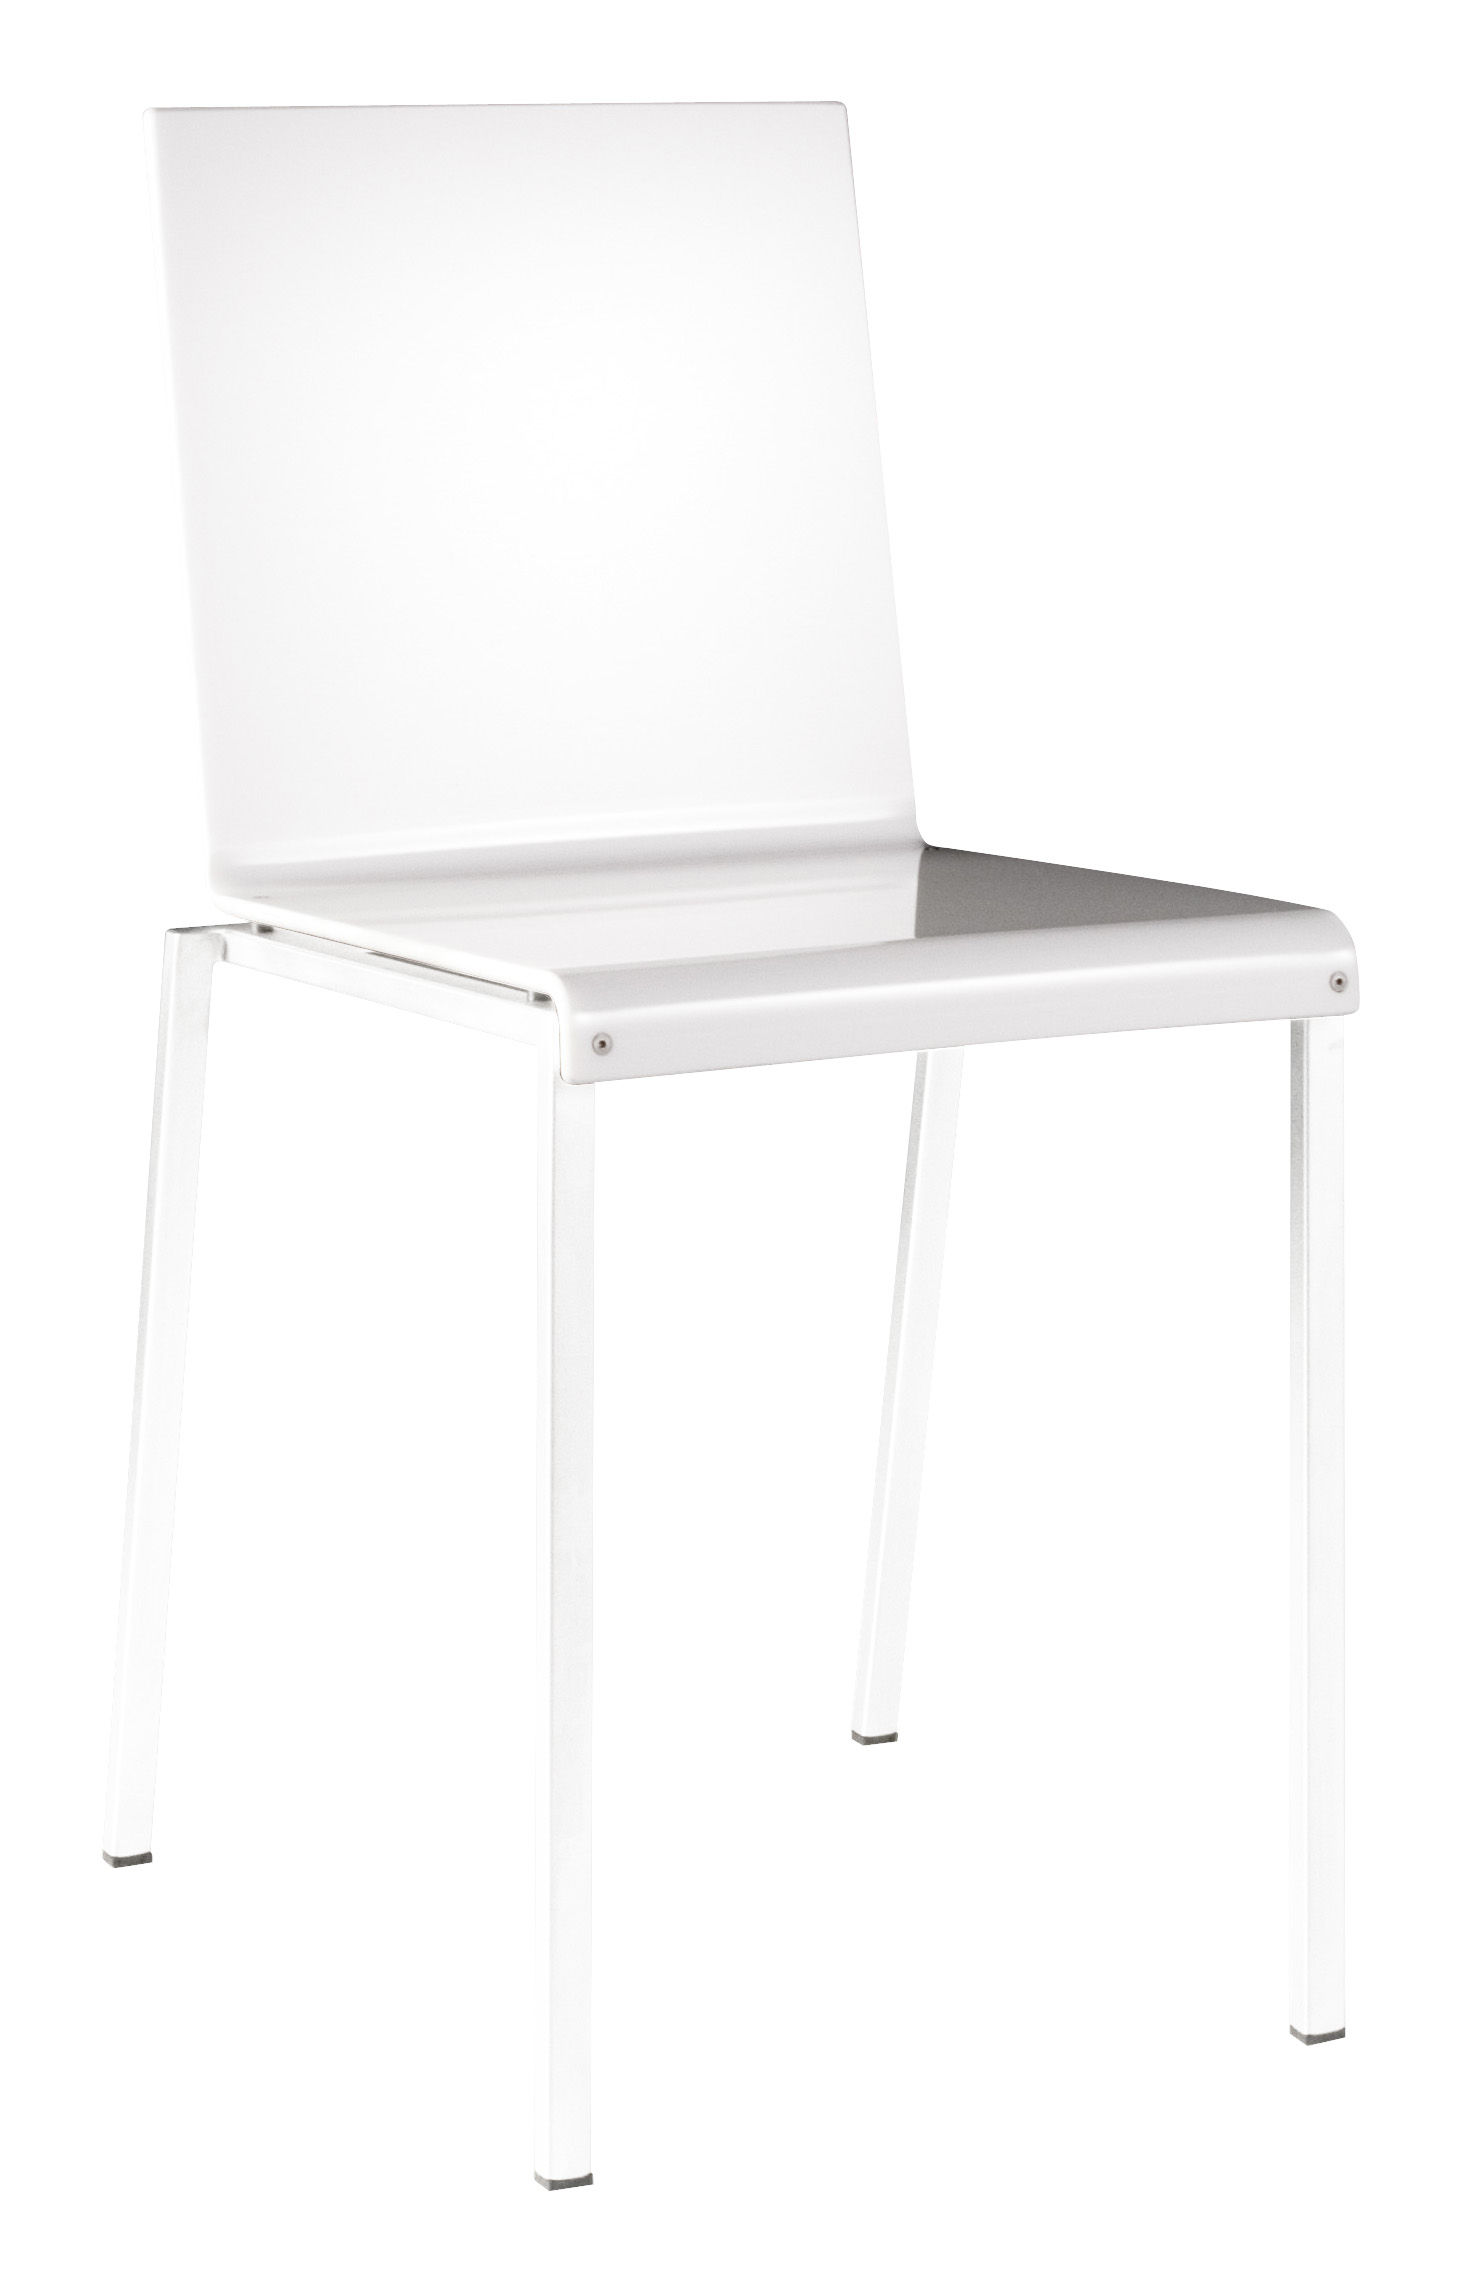 Furniture - Chairs - Bianca Chair - Glossy resine & metal legs by Zeus - Semiopaque white frame / Glossy white seat - Acrylic resin, Steel